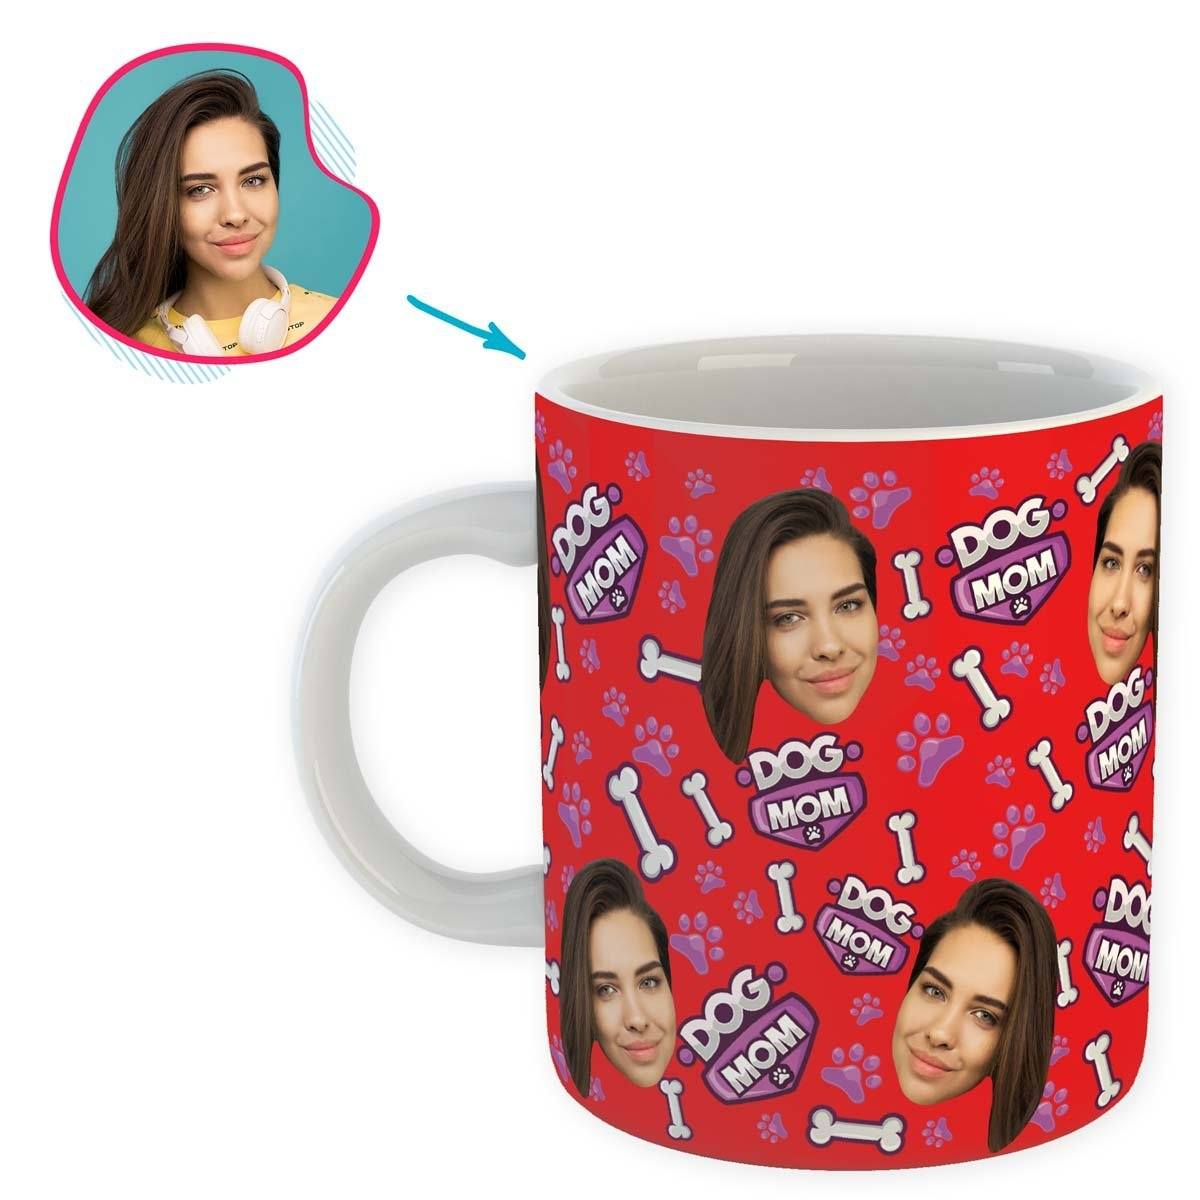 red Dog Mom mug personalized with photo of face printed on it